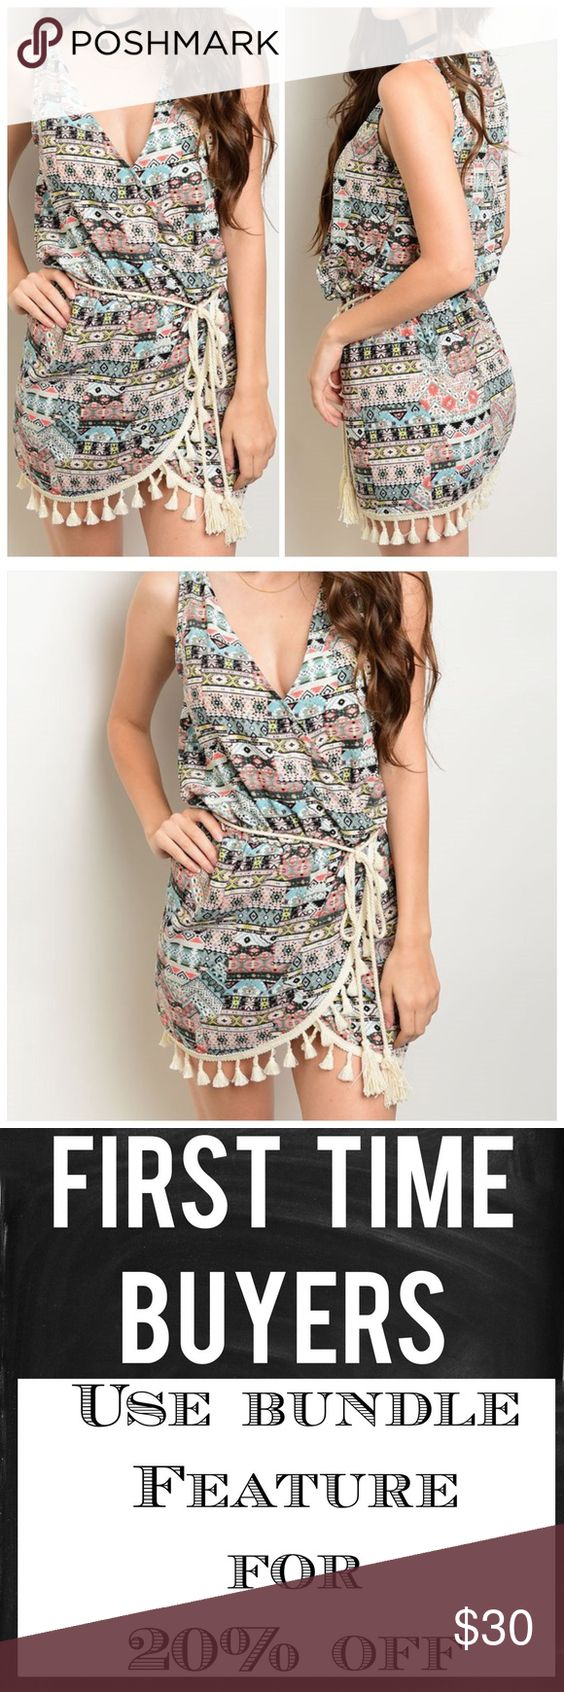 """Multicolred wrap tassel trim dress Perfect cool and casual dress. Multicolored all over print. Surplus wrap front. Tie waist with tassel trim and hem. Rock this look anywhere this summer!! Made in the USA. 100% polyester. Approximately 33"""" long. CupofTea Dresses Mini"""